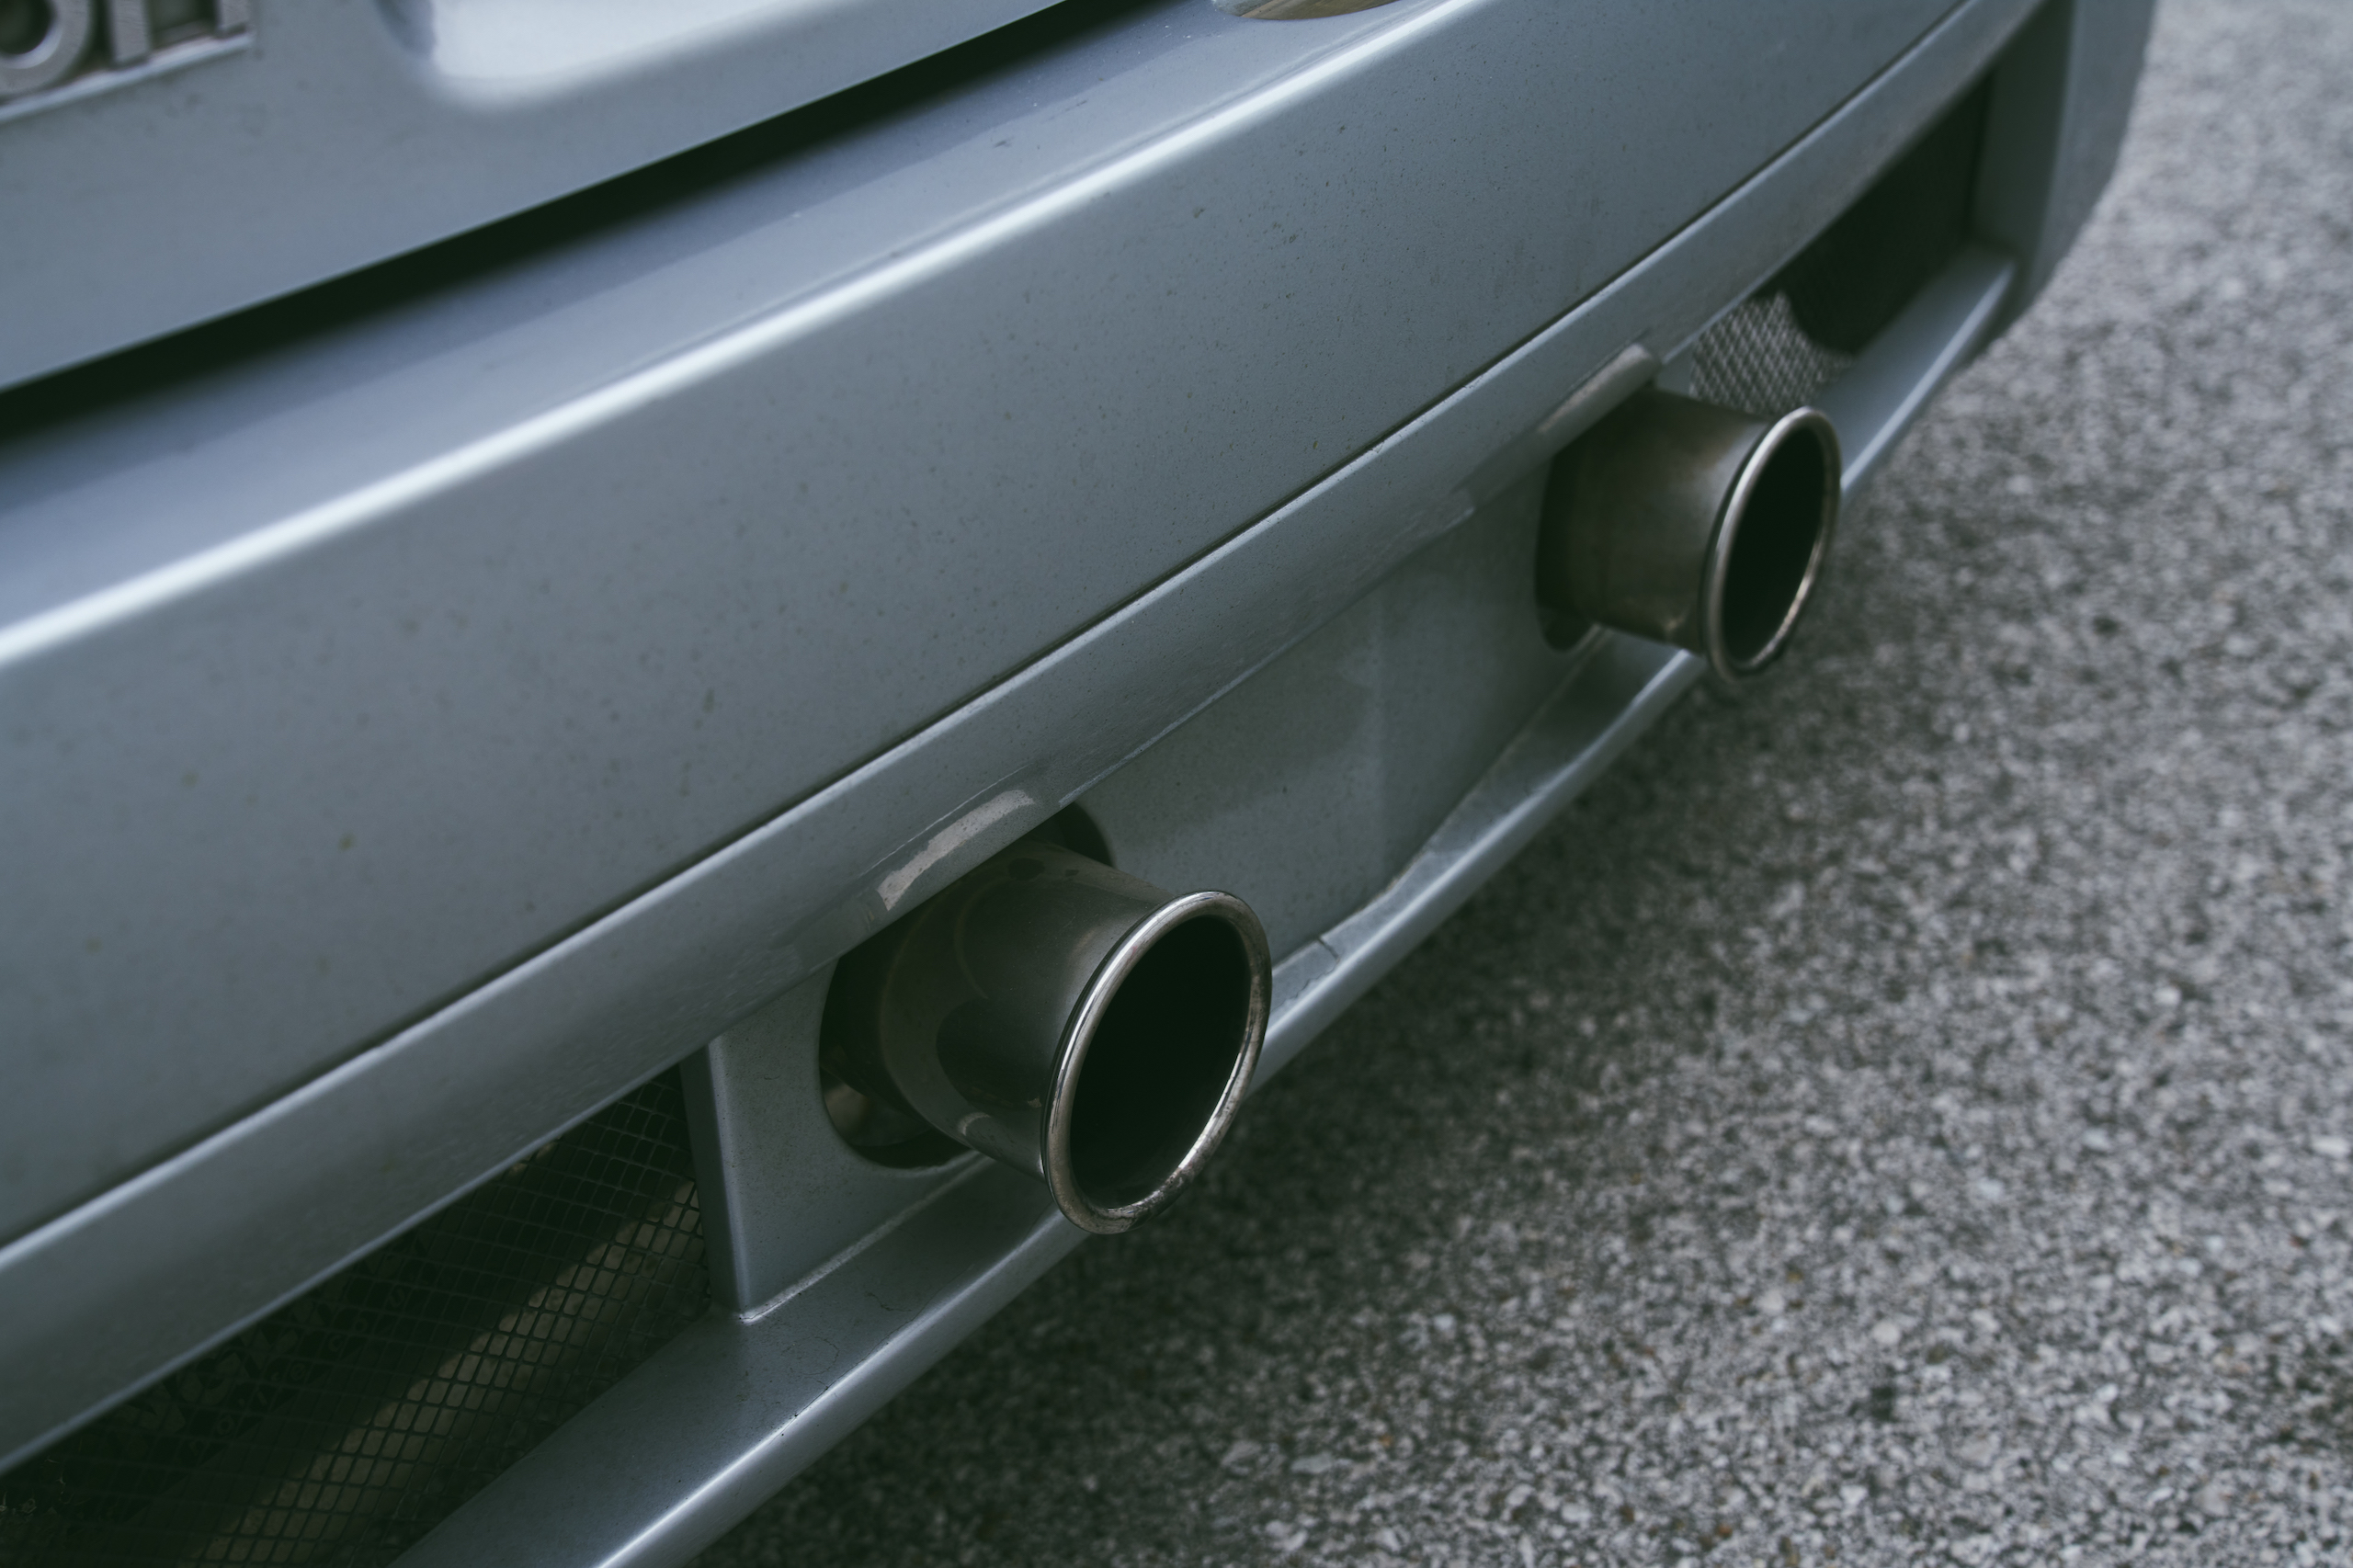 2002 Renault Clio V6 rear tailpipe detail